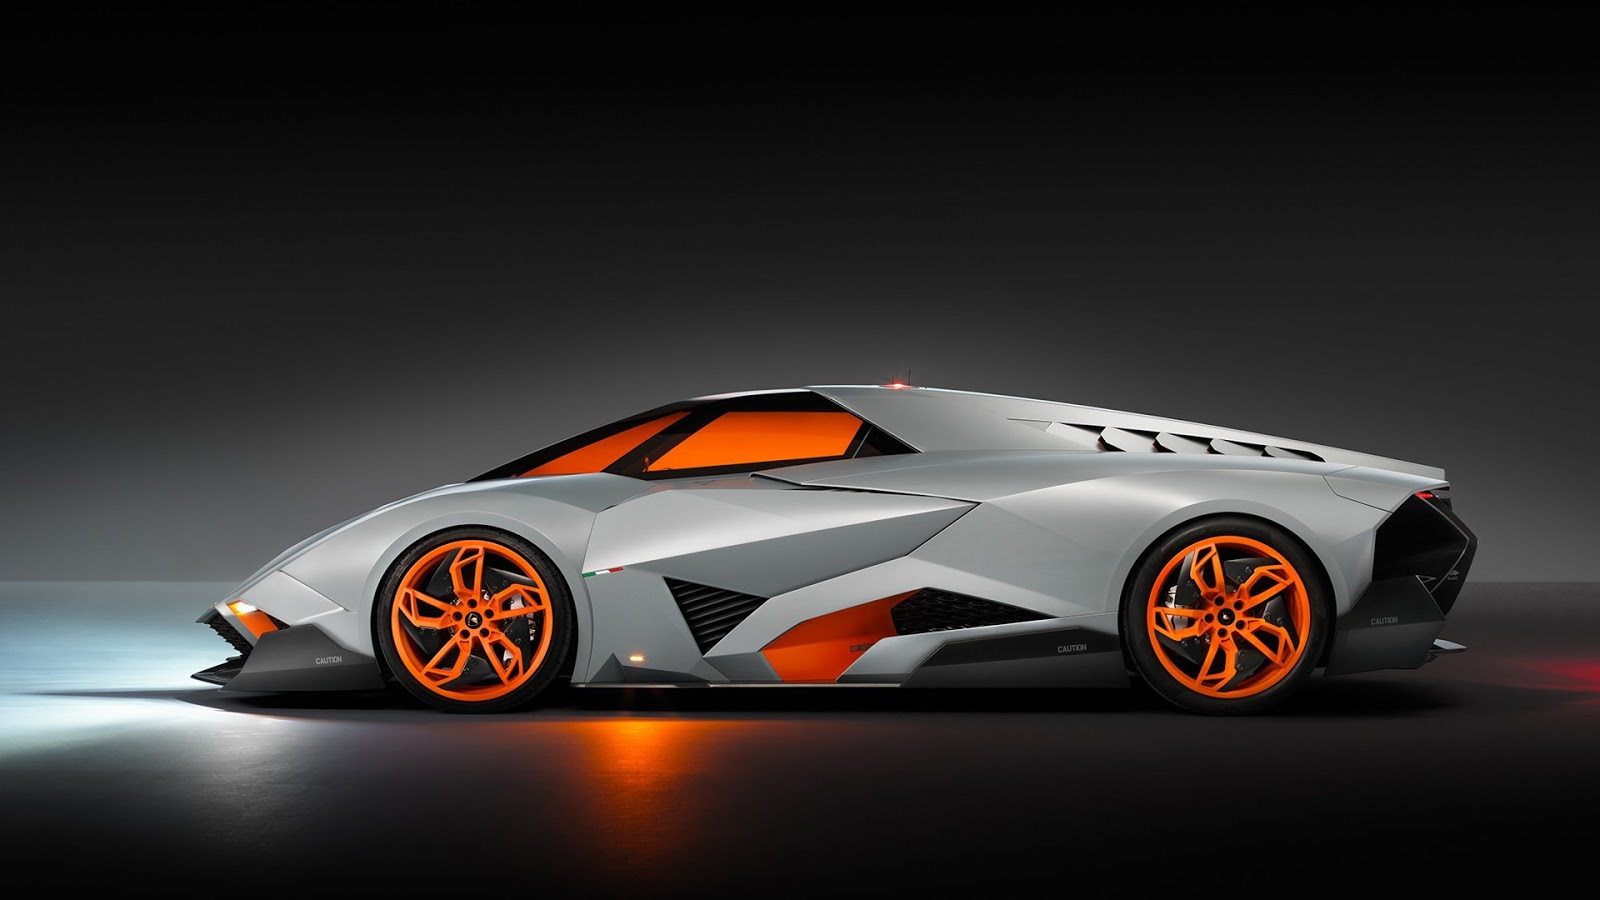 Lamborghini Egoista HD wallpapers | HD Wallpapers (High ...